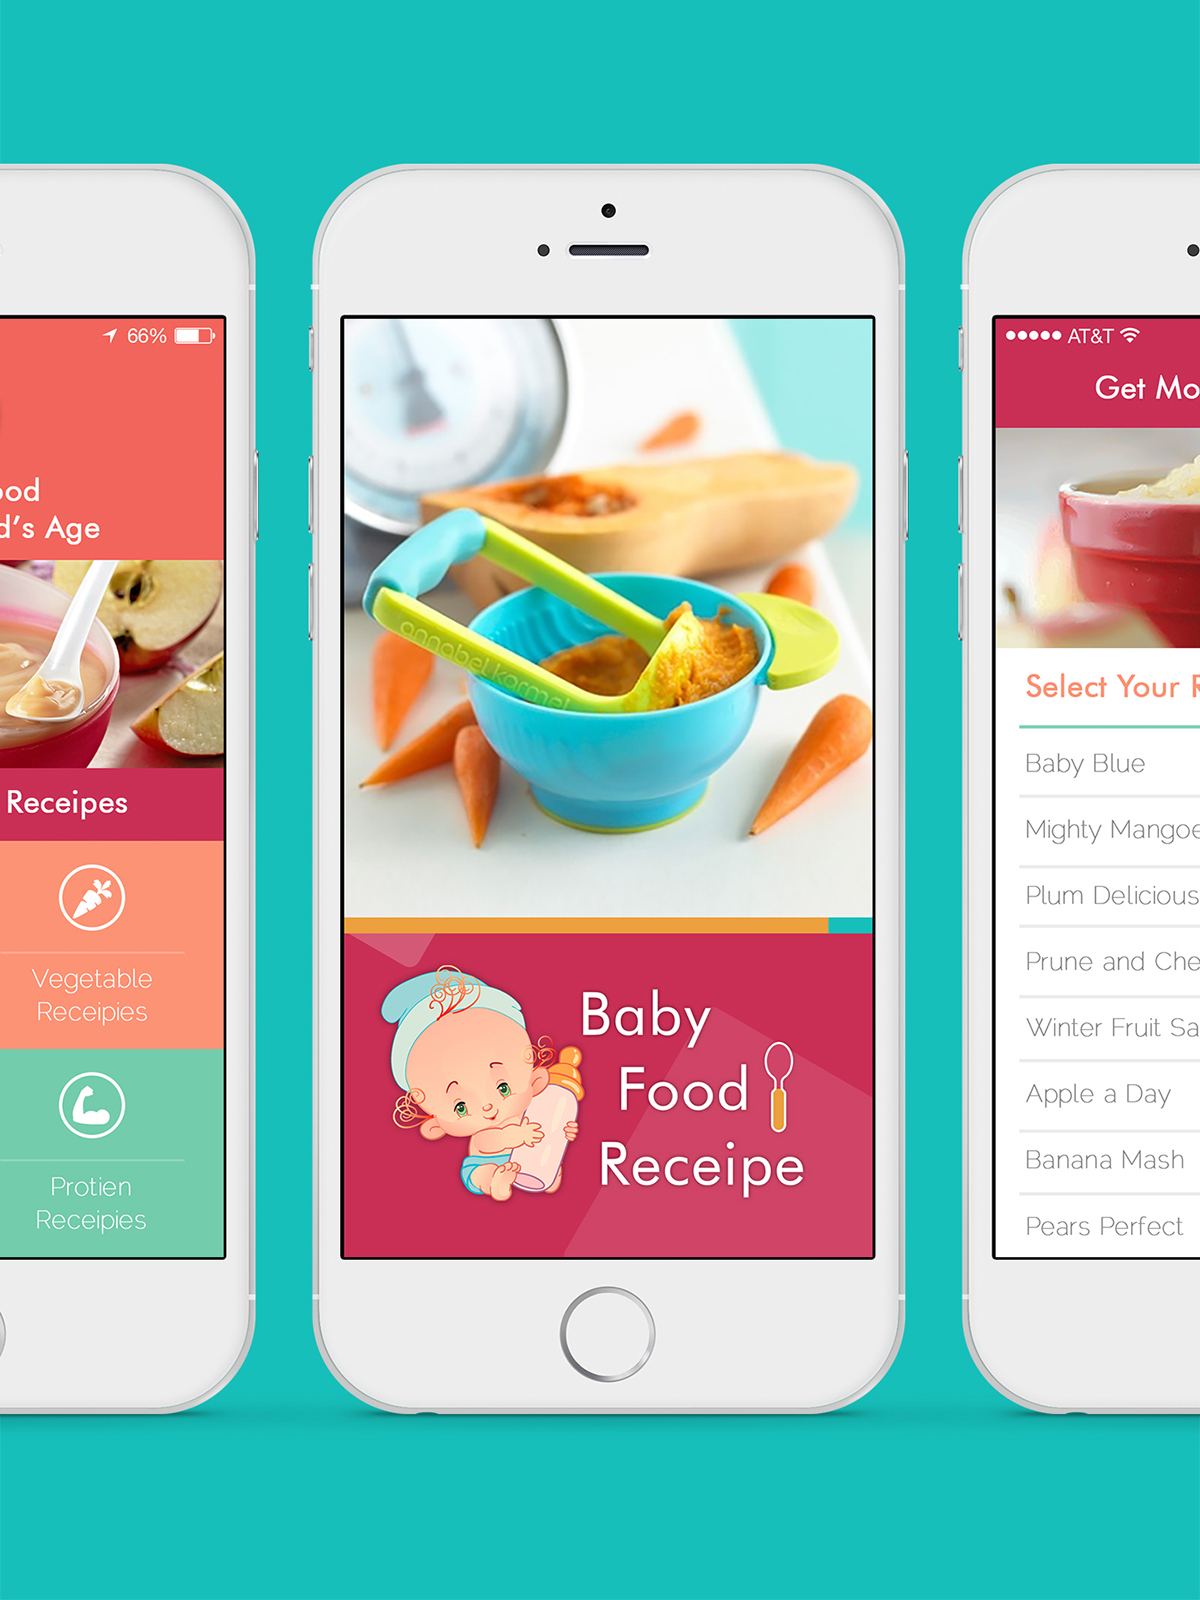 Baby food recipes mobile app design on aiga member gallery baby food recipes mobile app design forumfinder Gallery